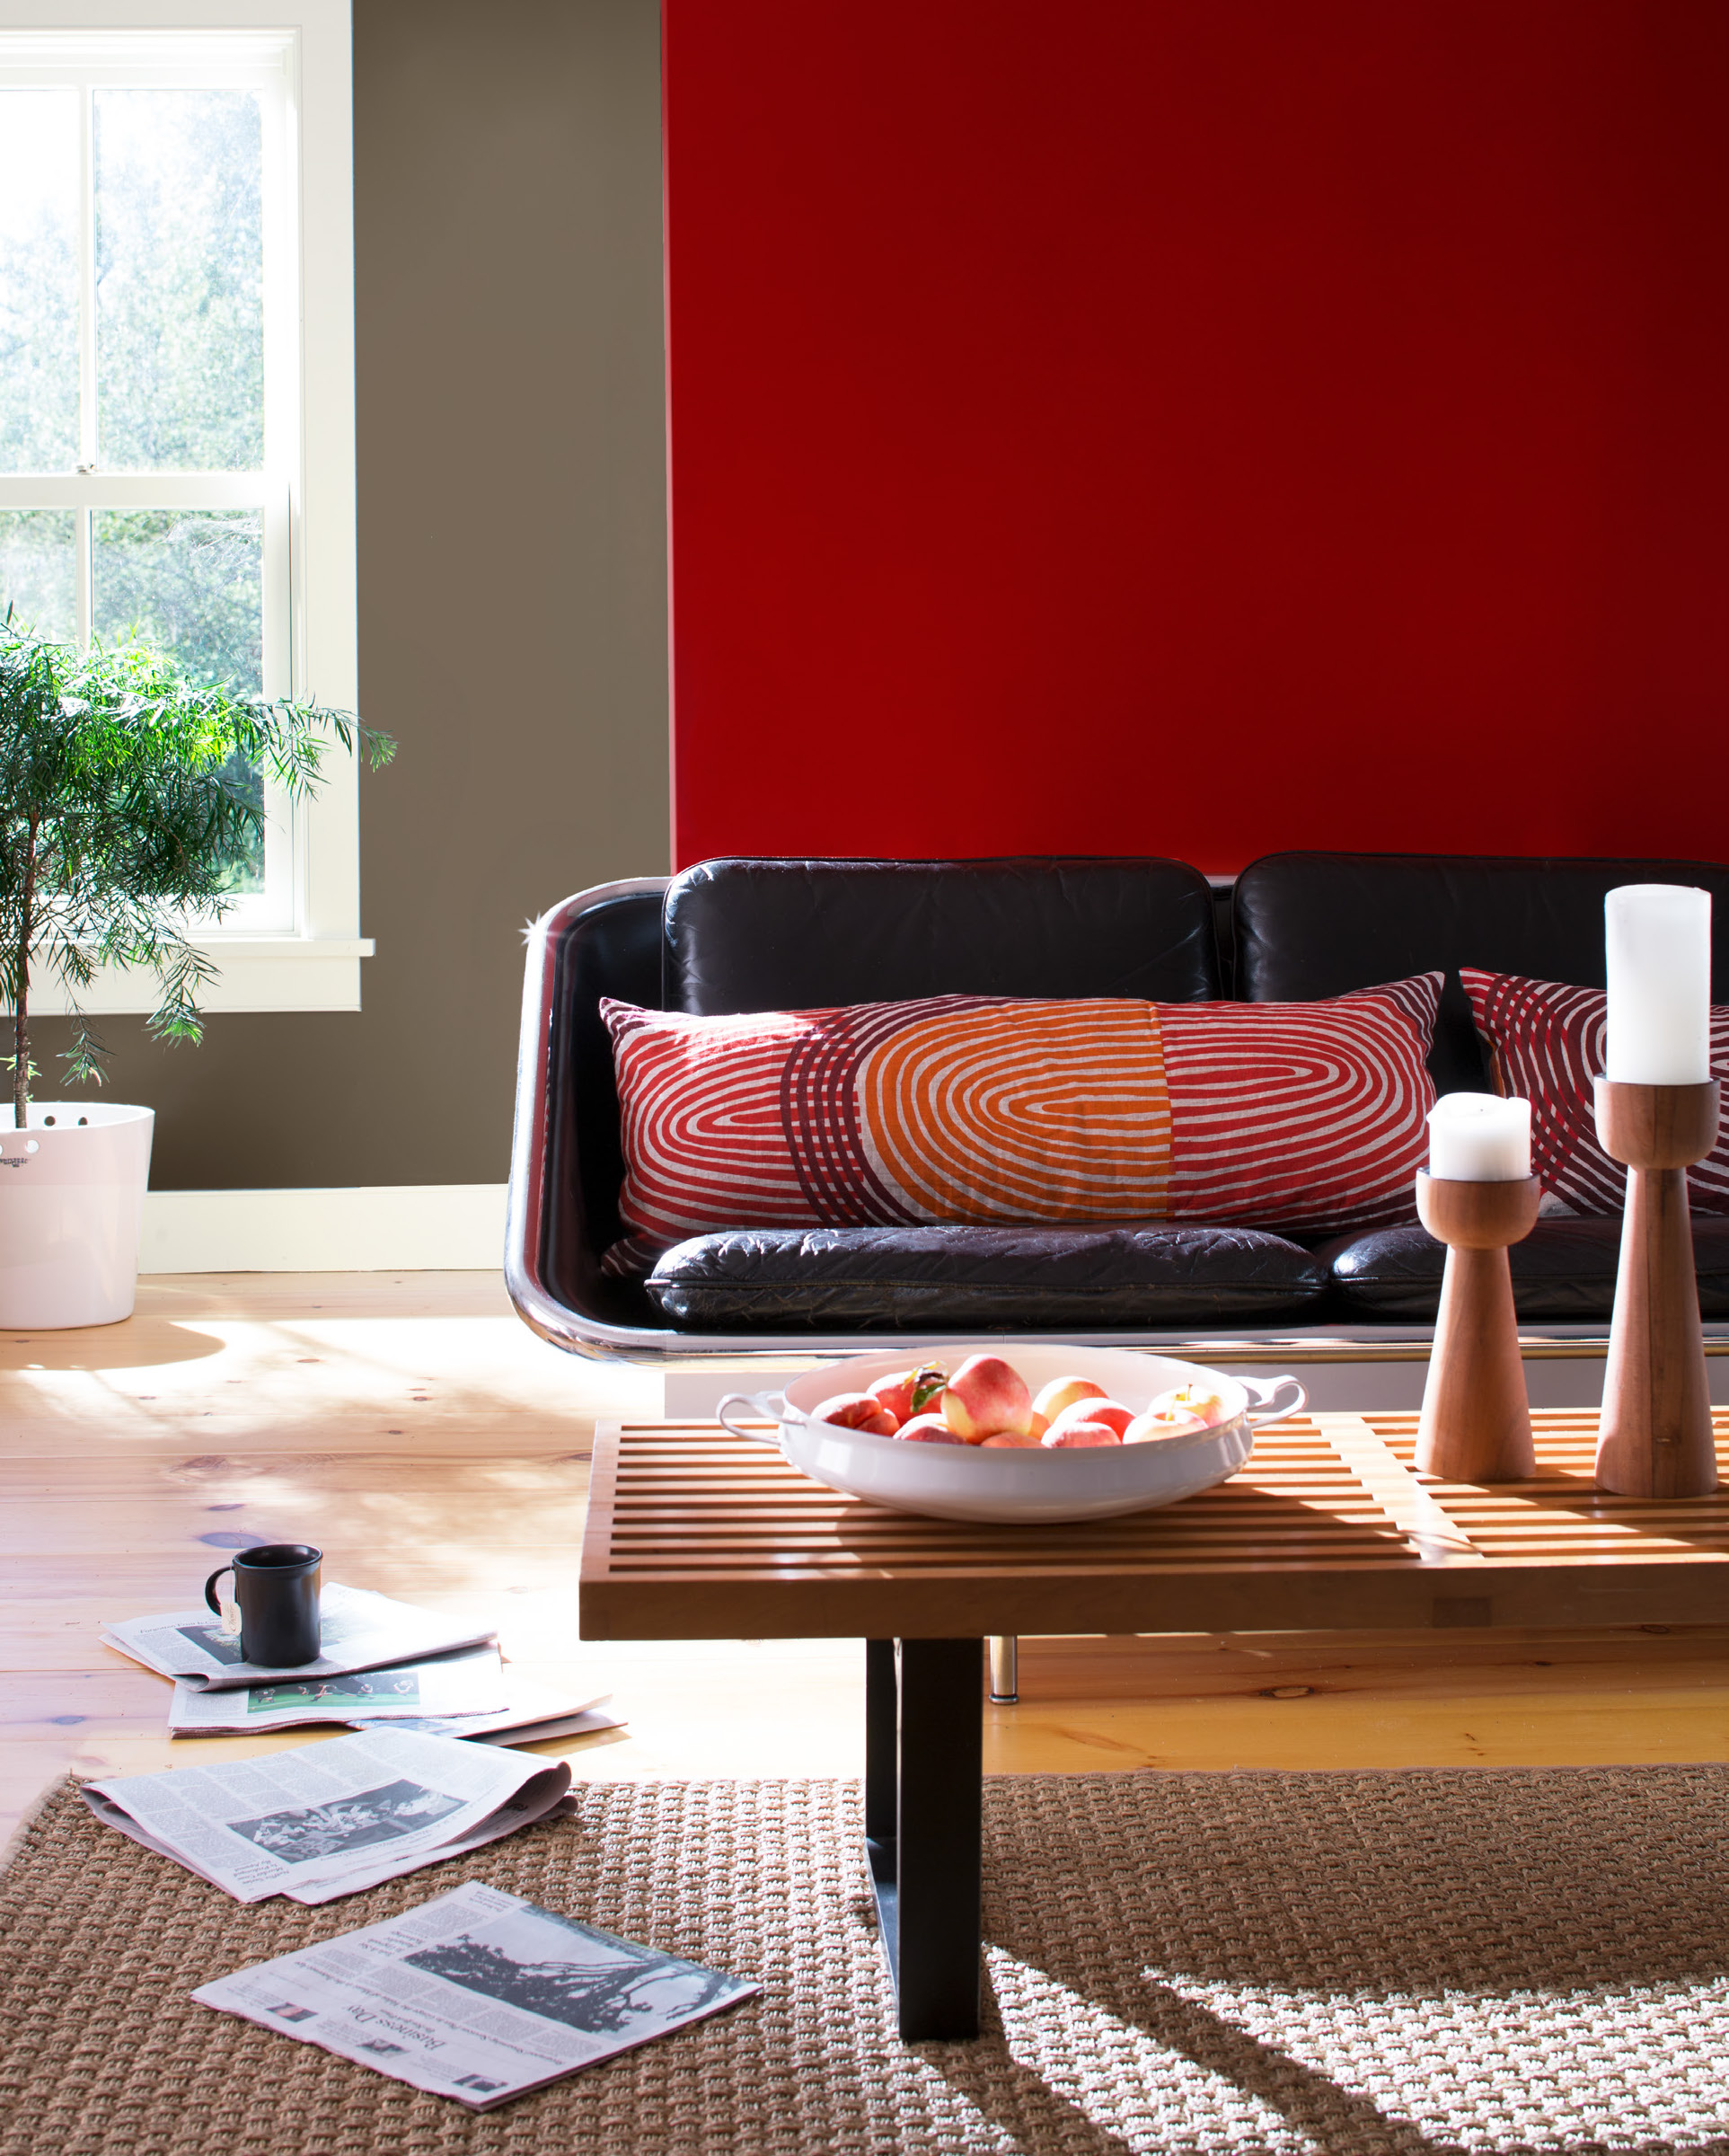 Living Room with Red Orange Accents – ColorMaxx